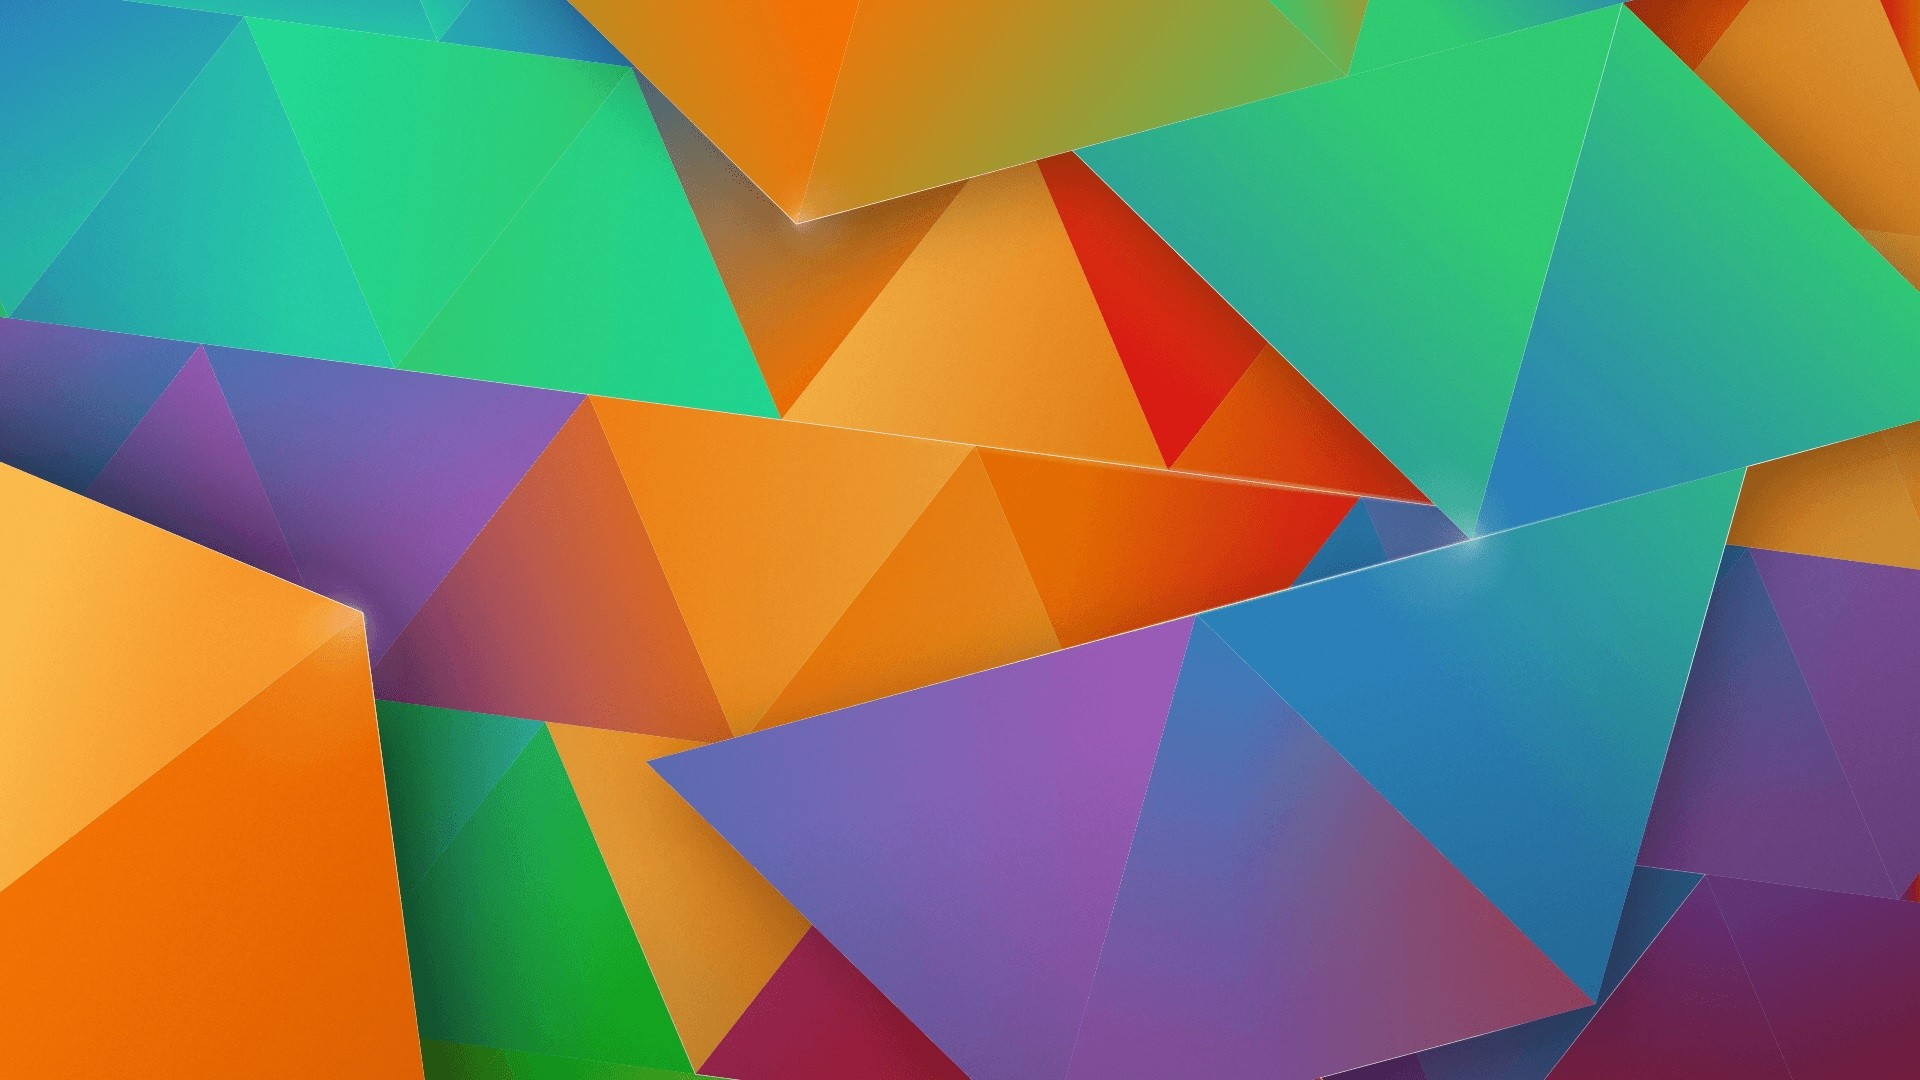 Plasma KDE Linux Wallpaper HD